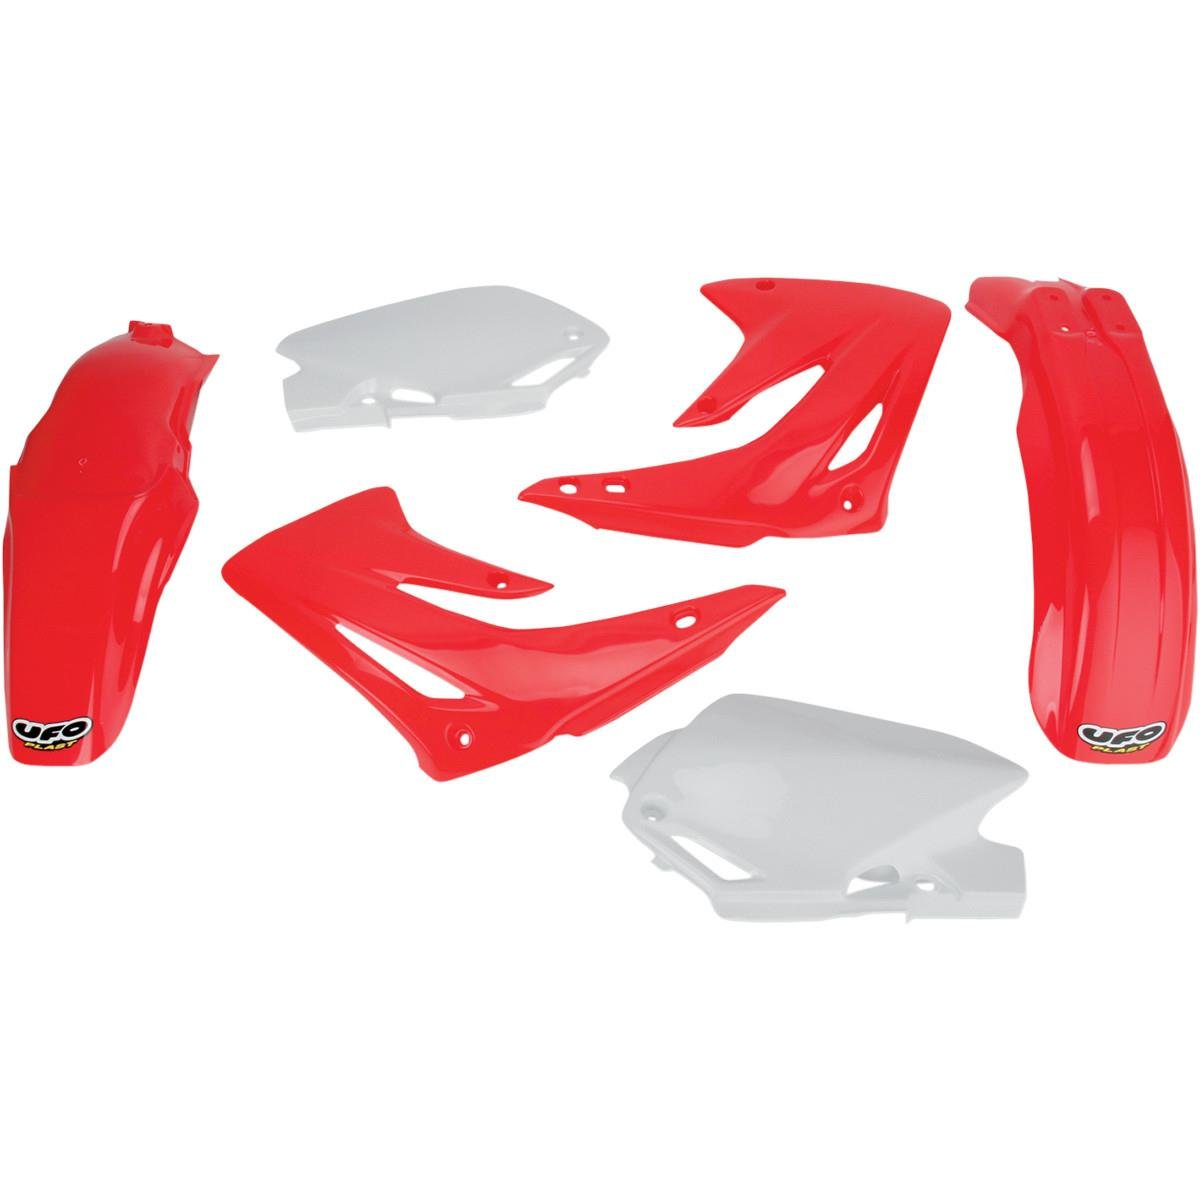 UFO HOKIT109-999 Complete Body Kit (Body KIT, HON CR85 03-06)